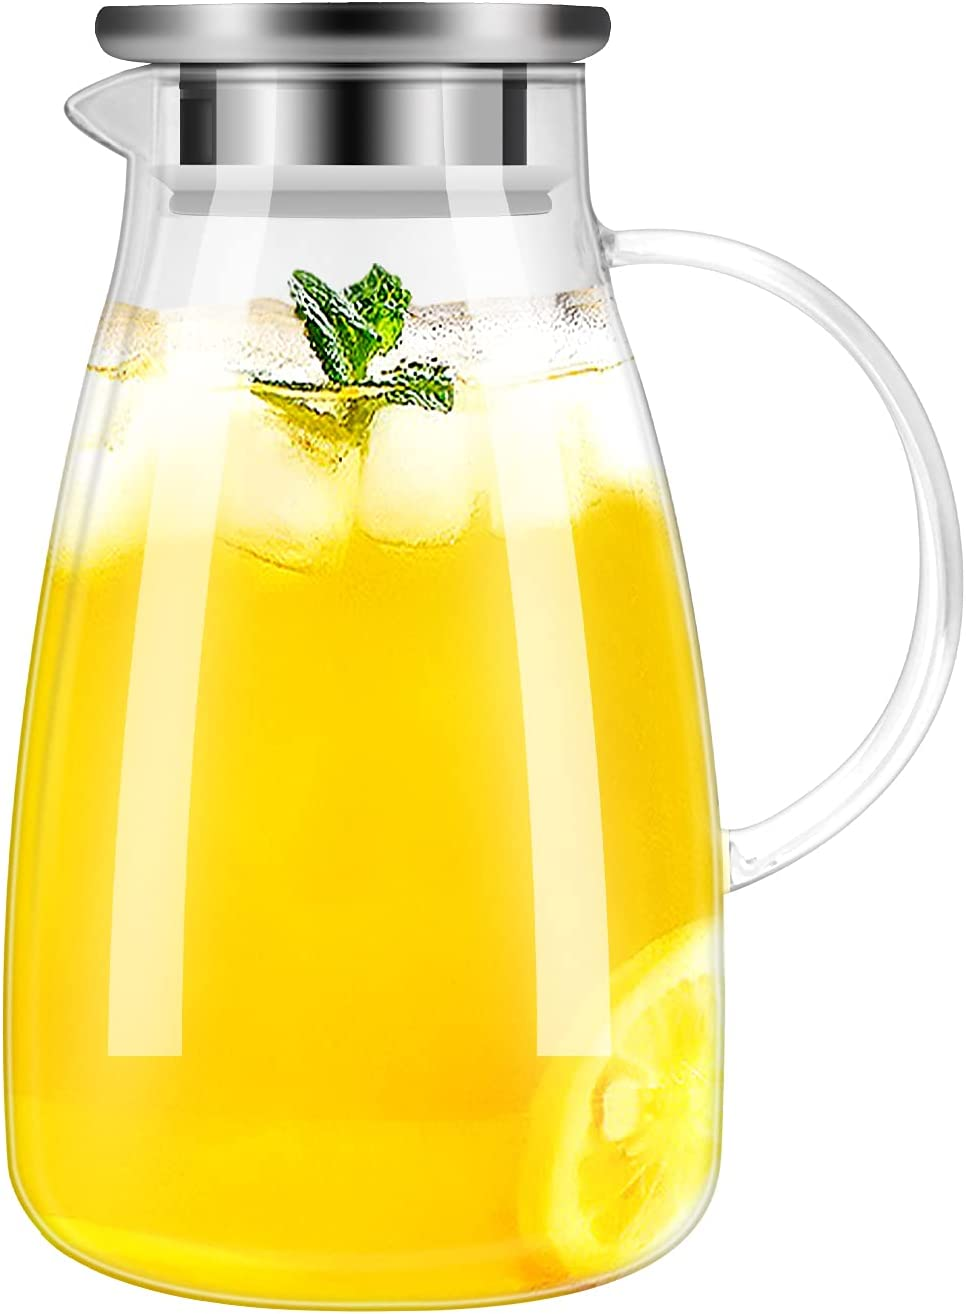 DYKL Large Capacity iced Tea Pitcher- Glass Free Shipping Cheap Bargain Gift 1 Ounces 68 We OFFer at cheap prices Pitcher